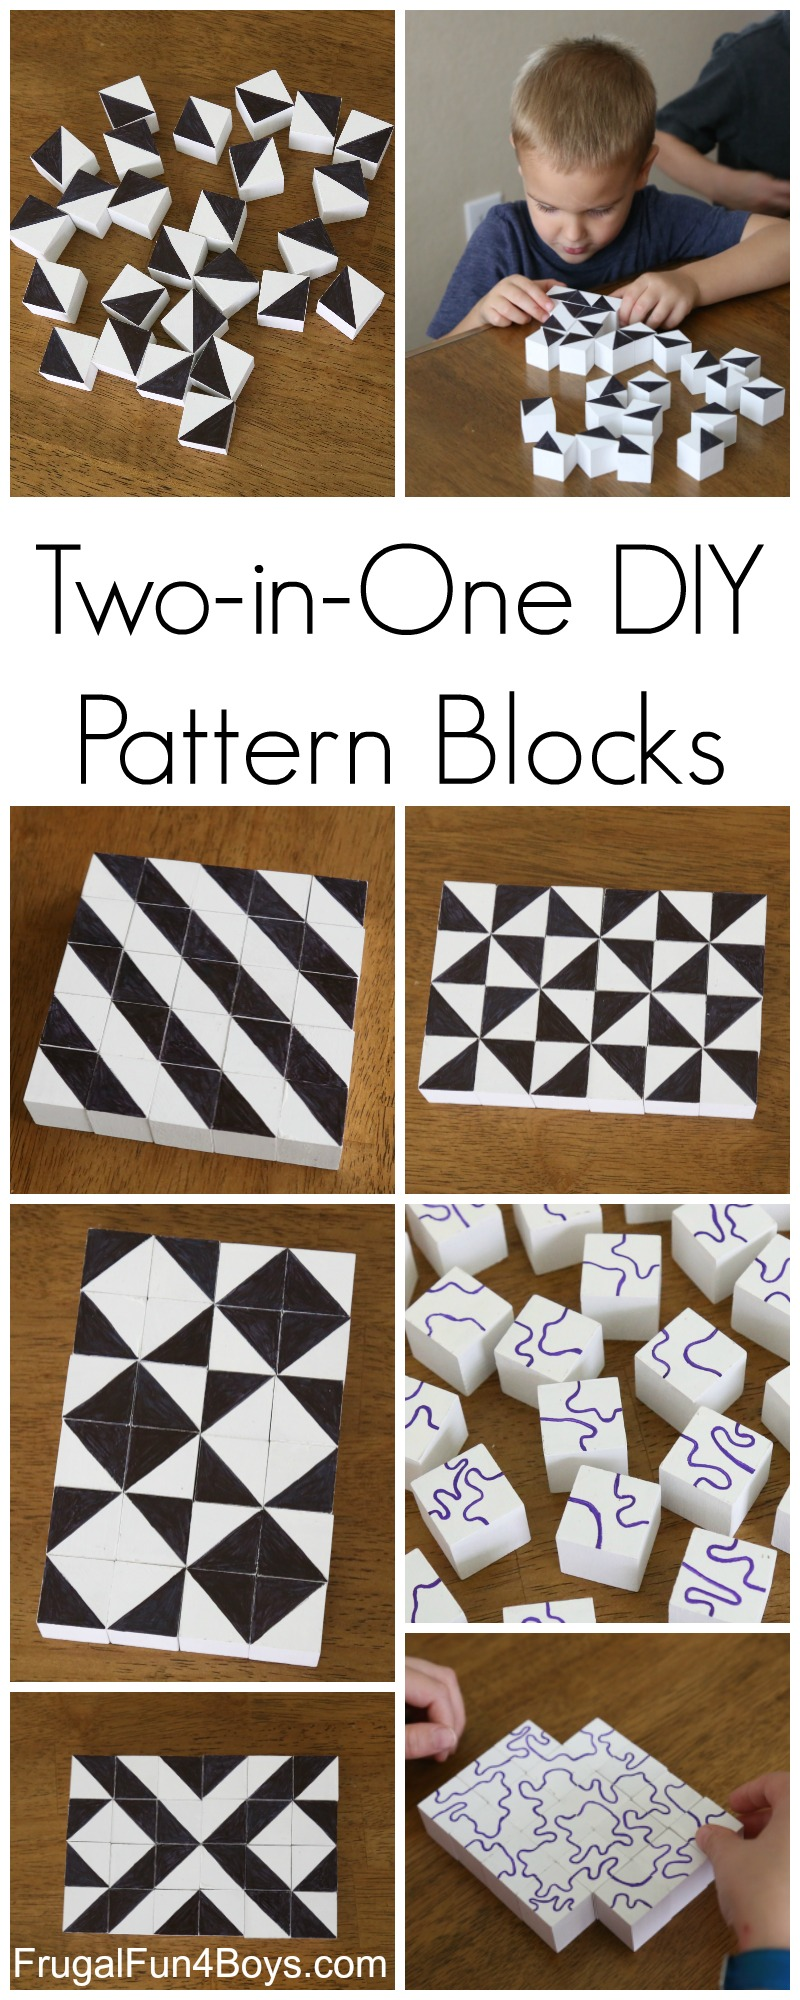 Two-in-One DIY Pattern Blocks for STEM Learning and Play